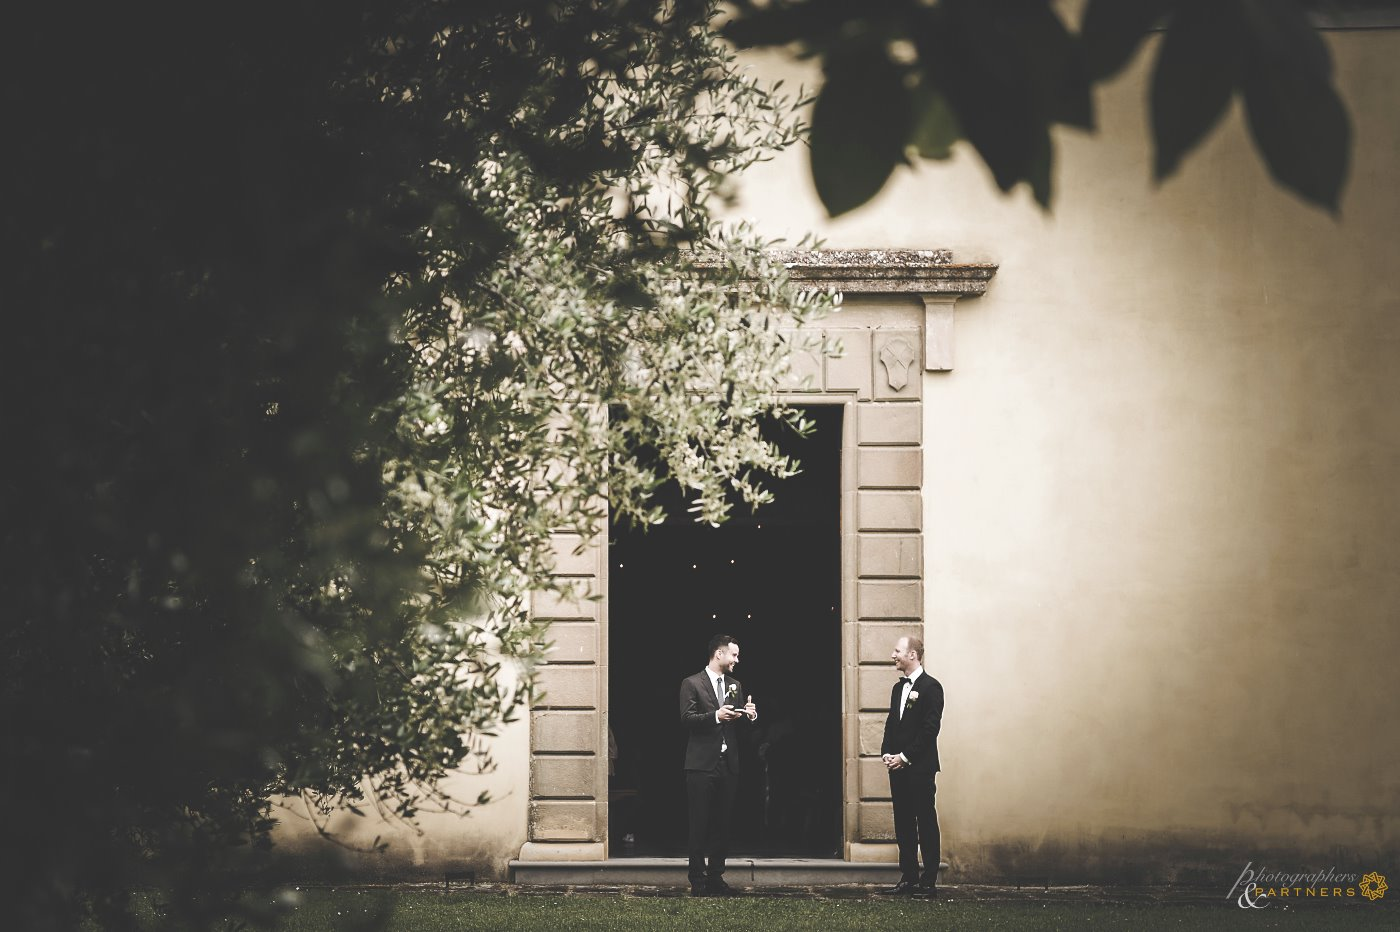 photographers_weddings_chianti_06.jpg